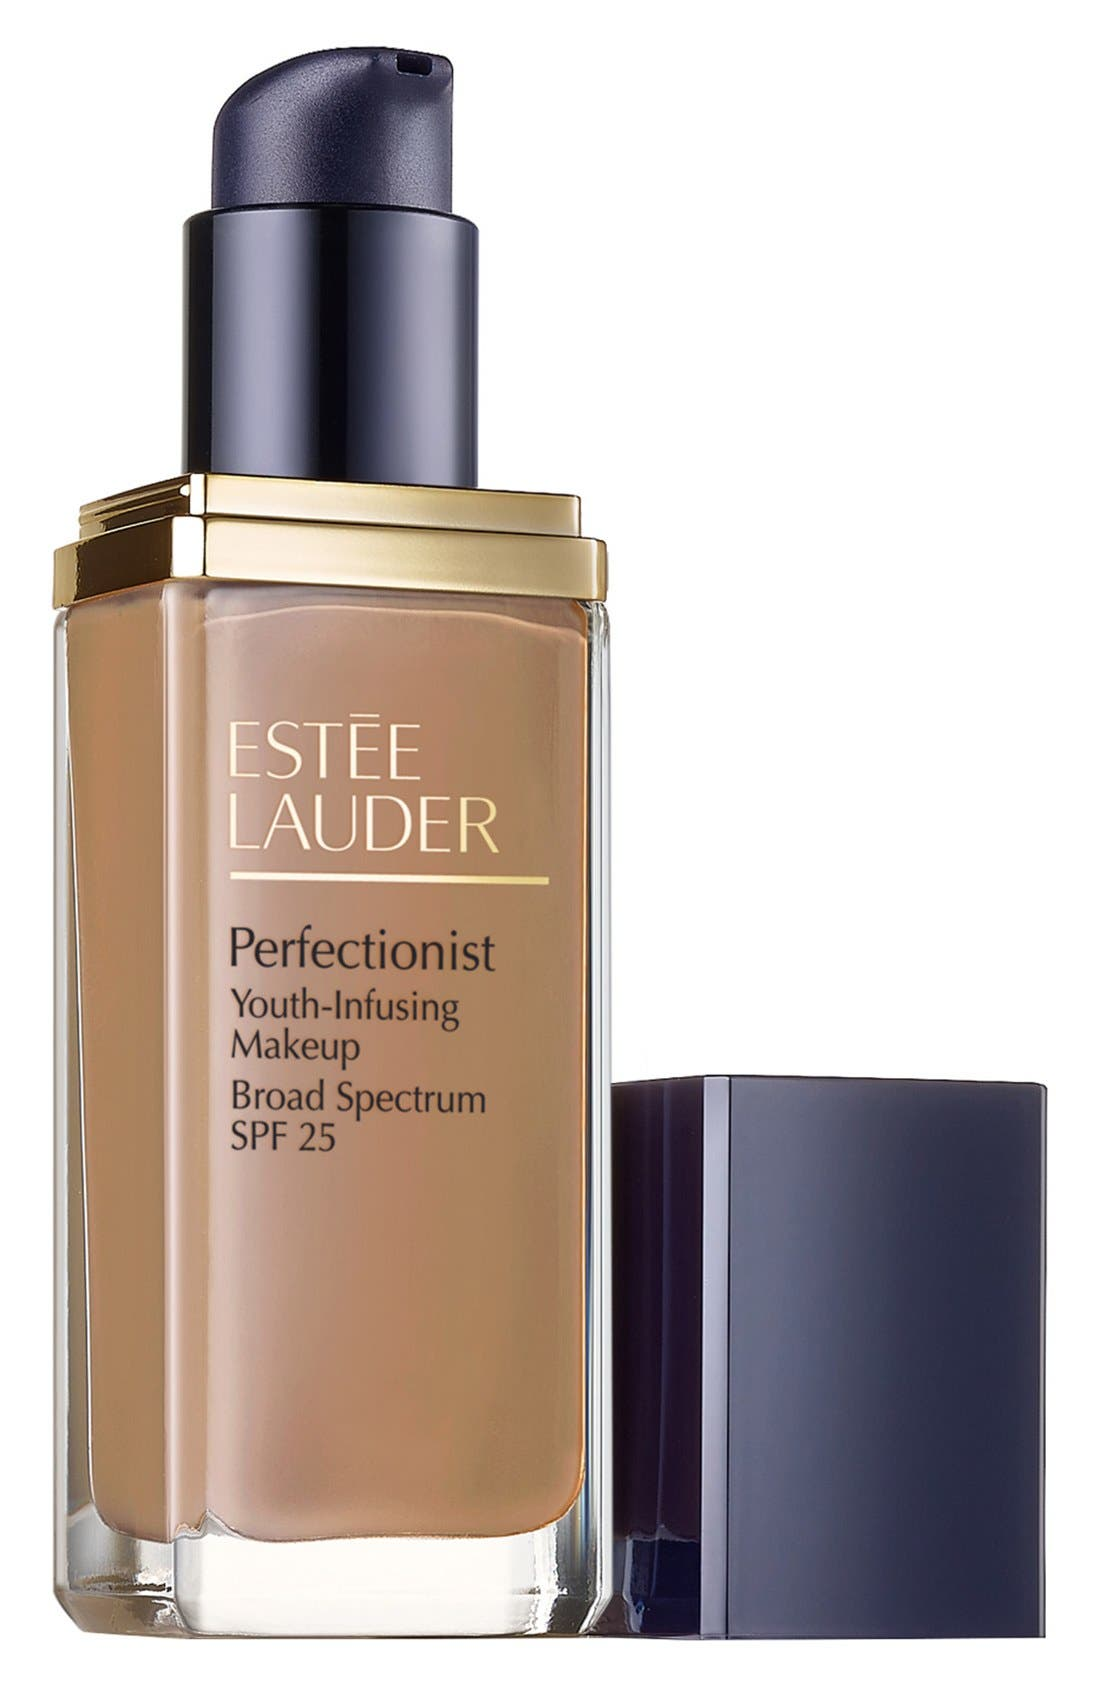 Estée Lauder Perfectionist Youth-Infusing Makeup Broad Spectrum SPF 25